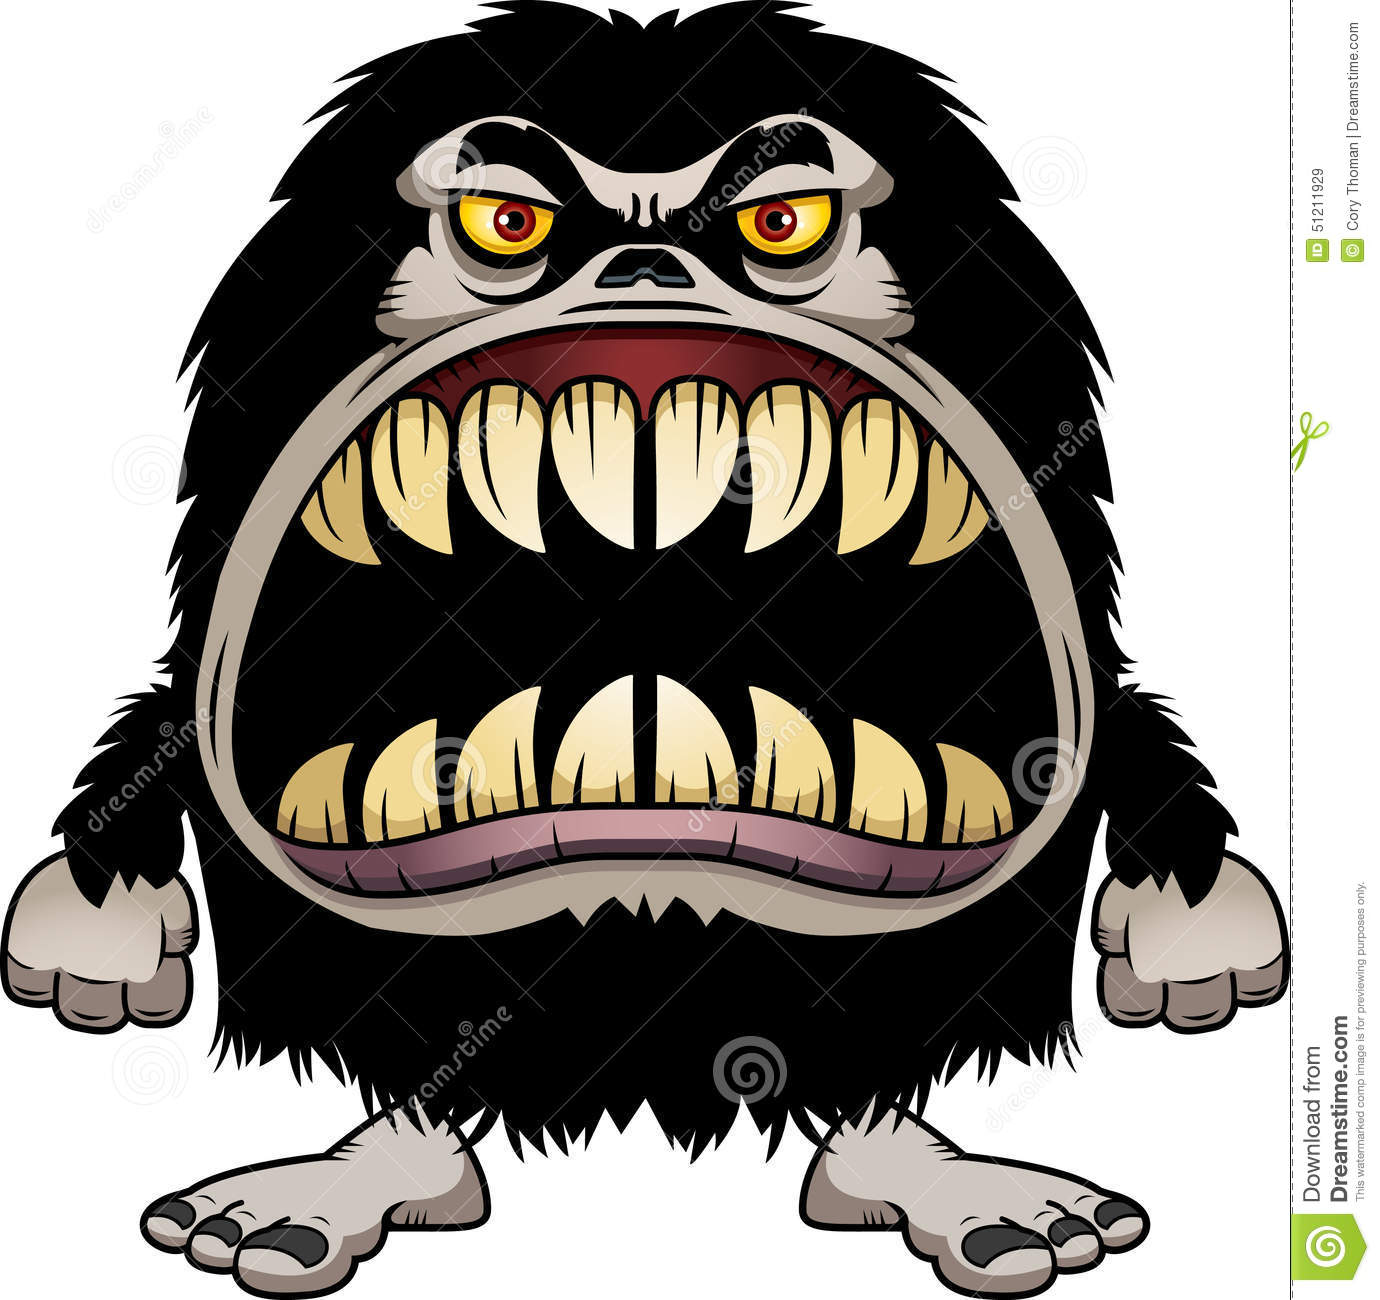 Angry Cartoon Hairy Monster Stock Vector Image 51211929